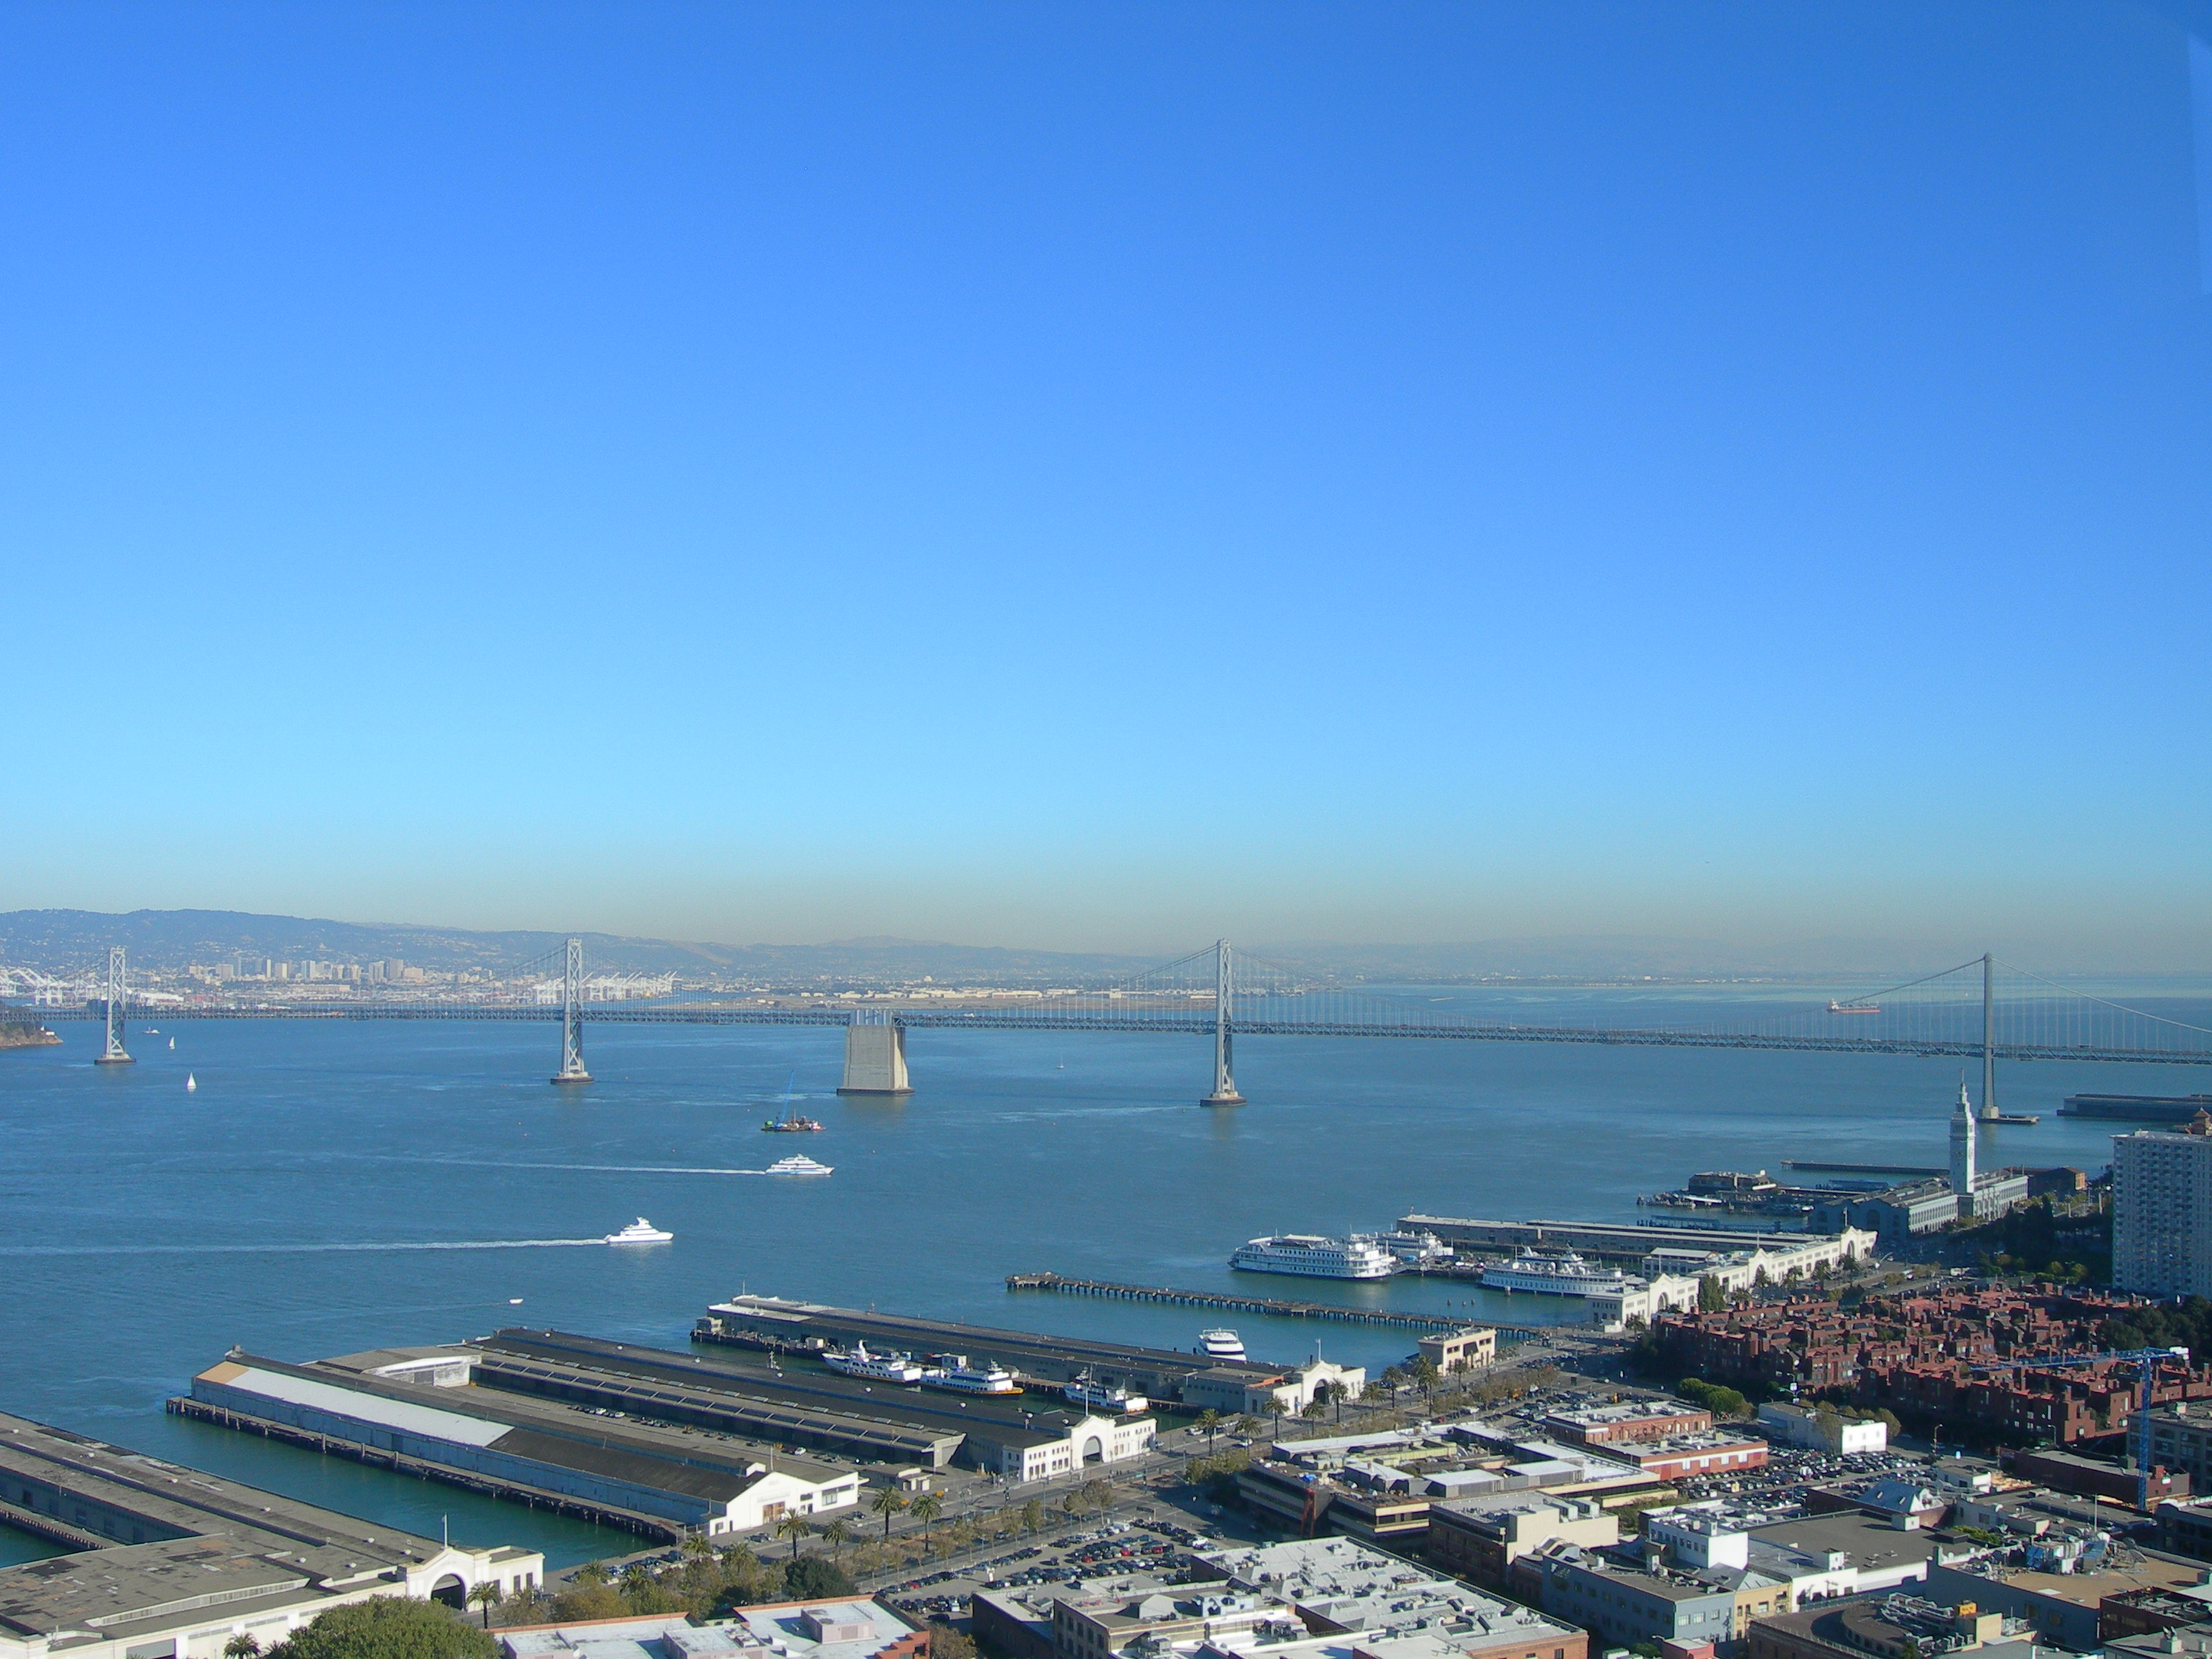 Bay bridge view photo